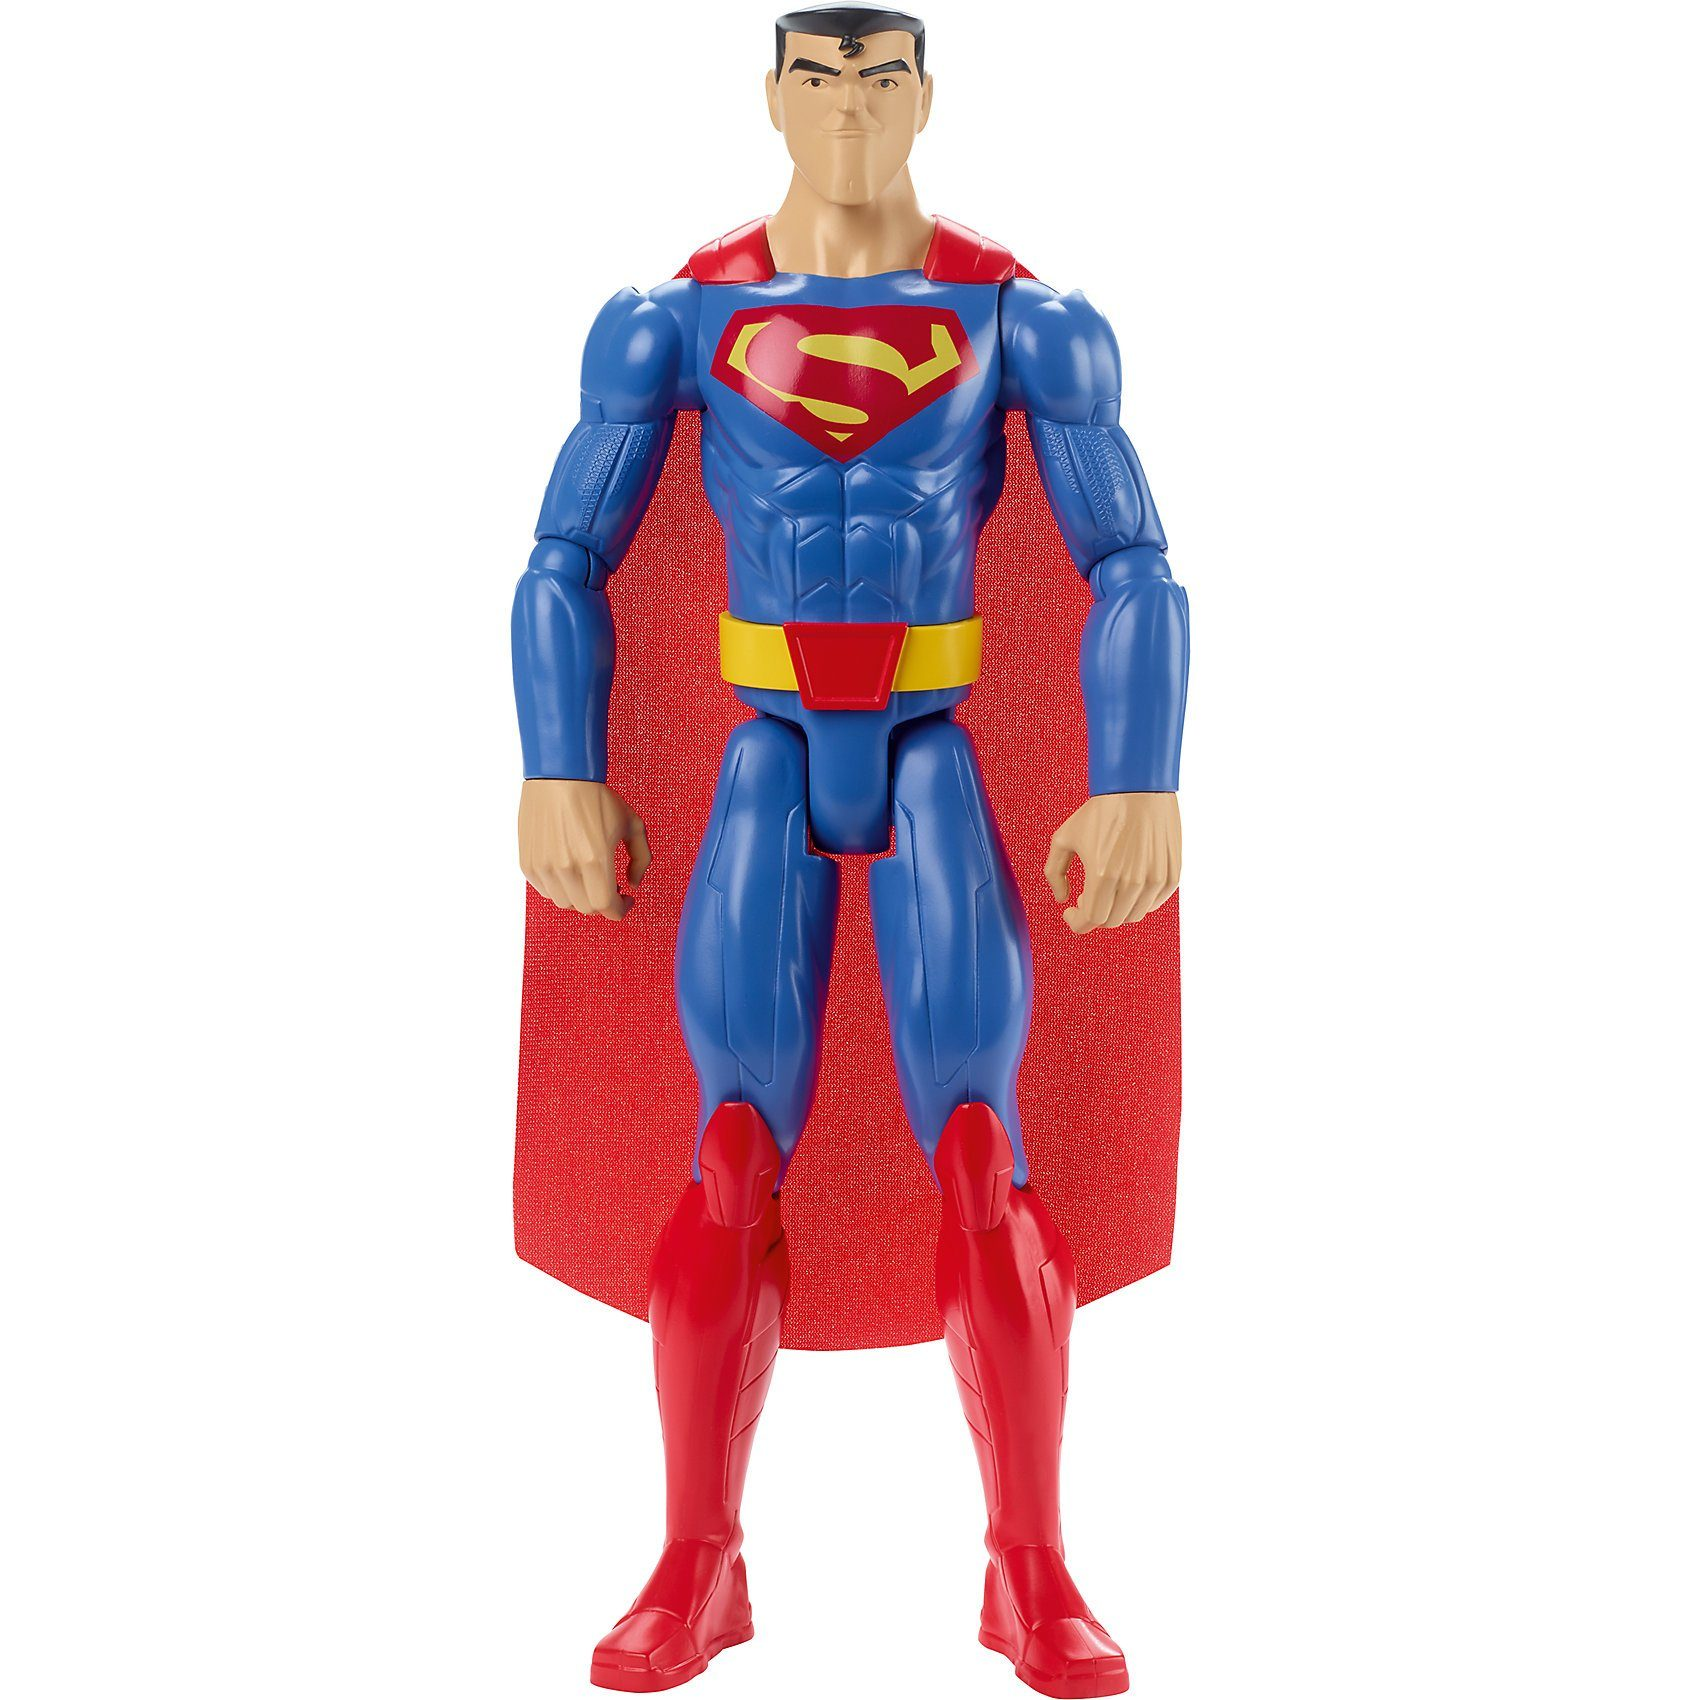 Mattel® DC Justice League Basis-Figur Superman (30 cm)